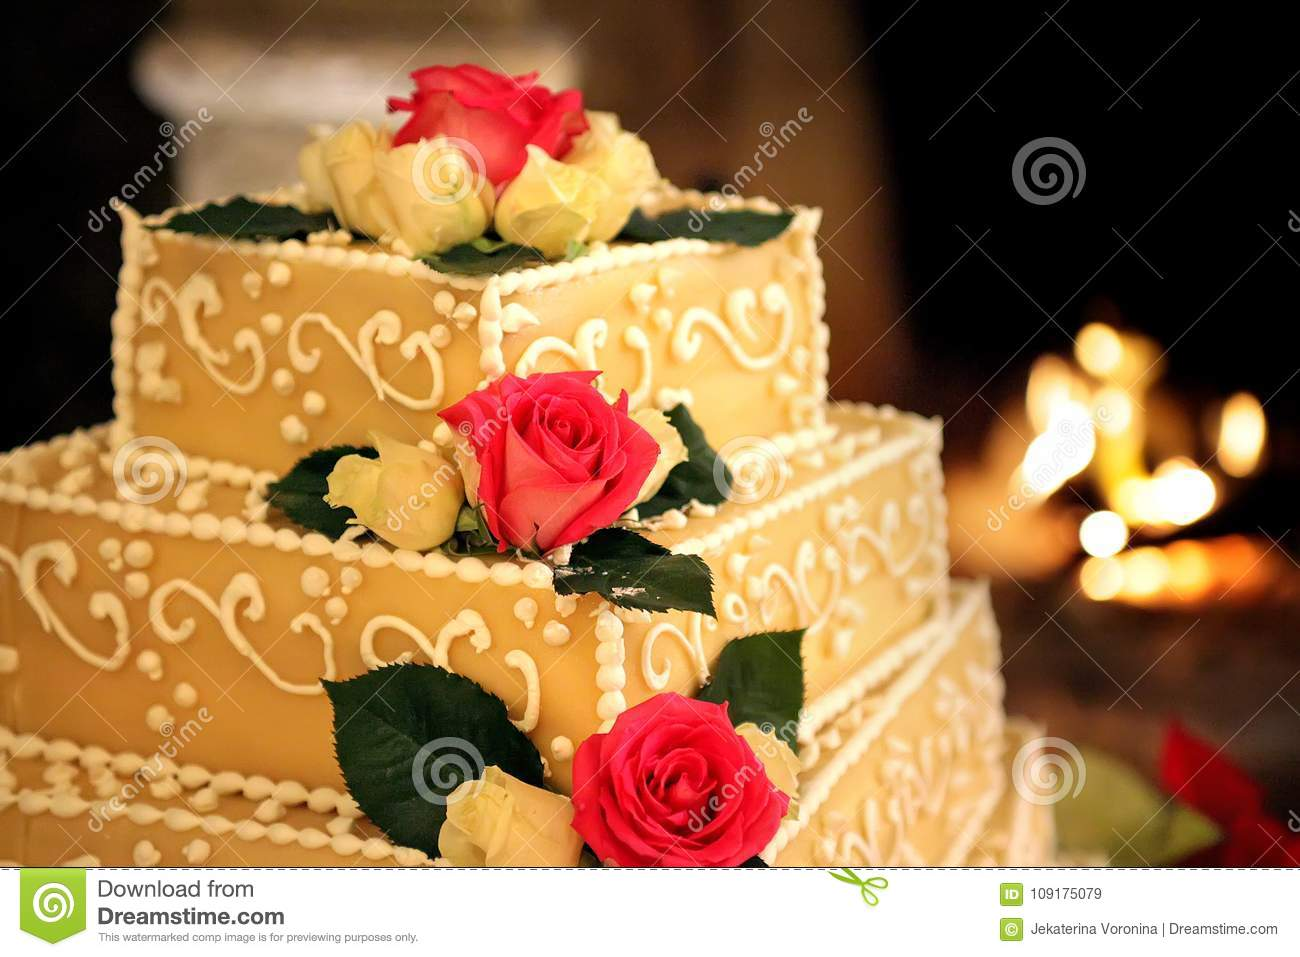 Wedding Cake With Red Roses Stock Image - Image of festive, lights ...